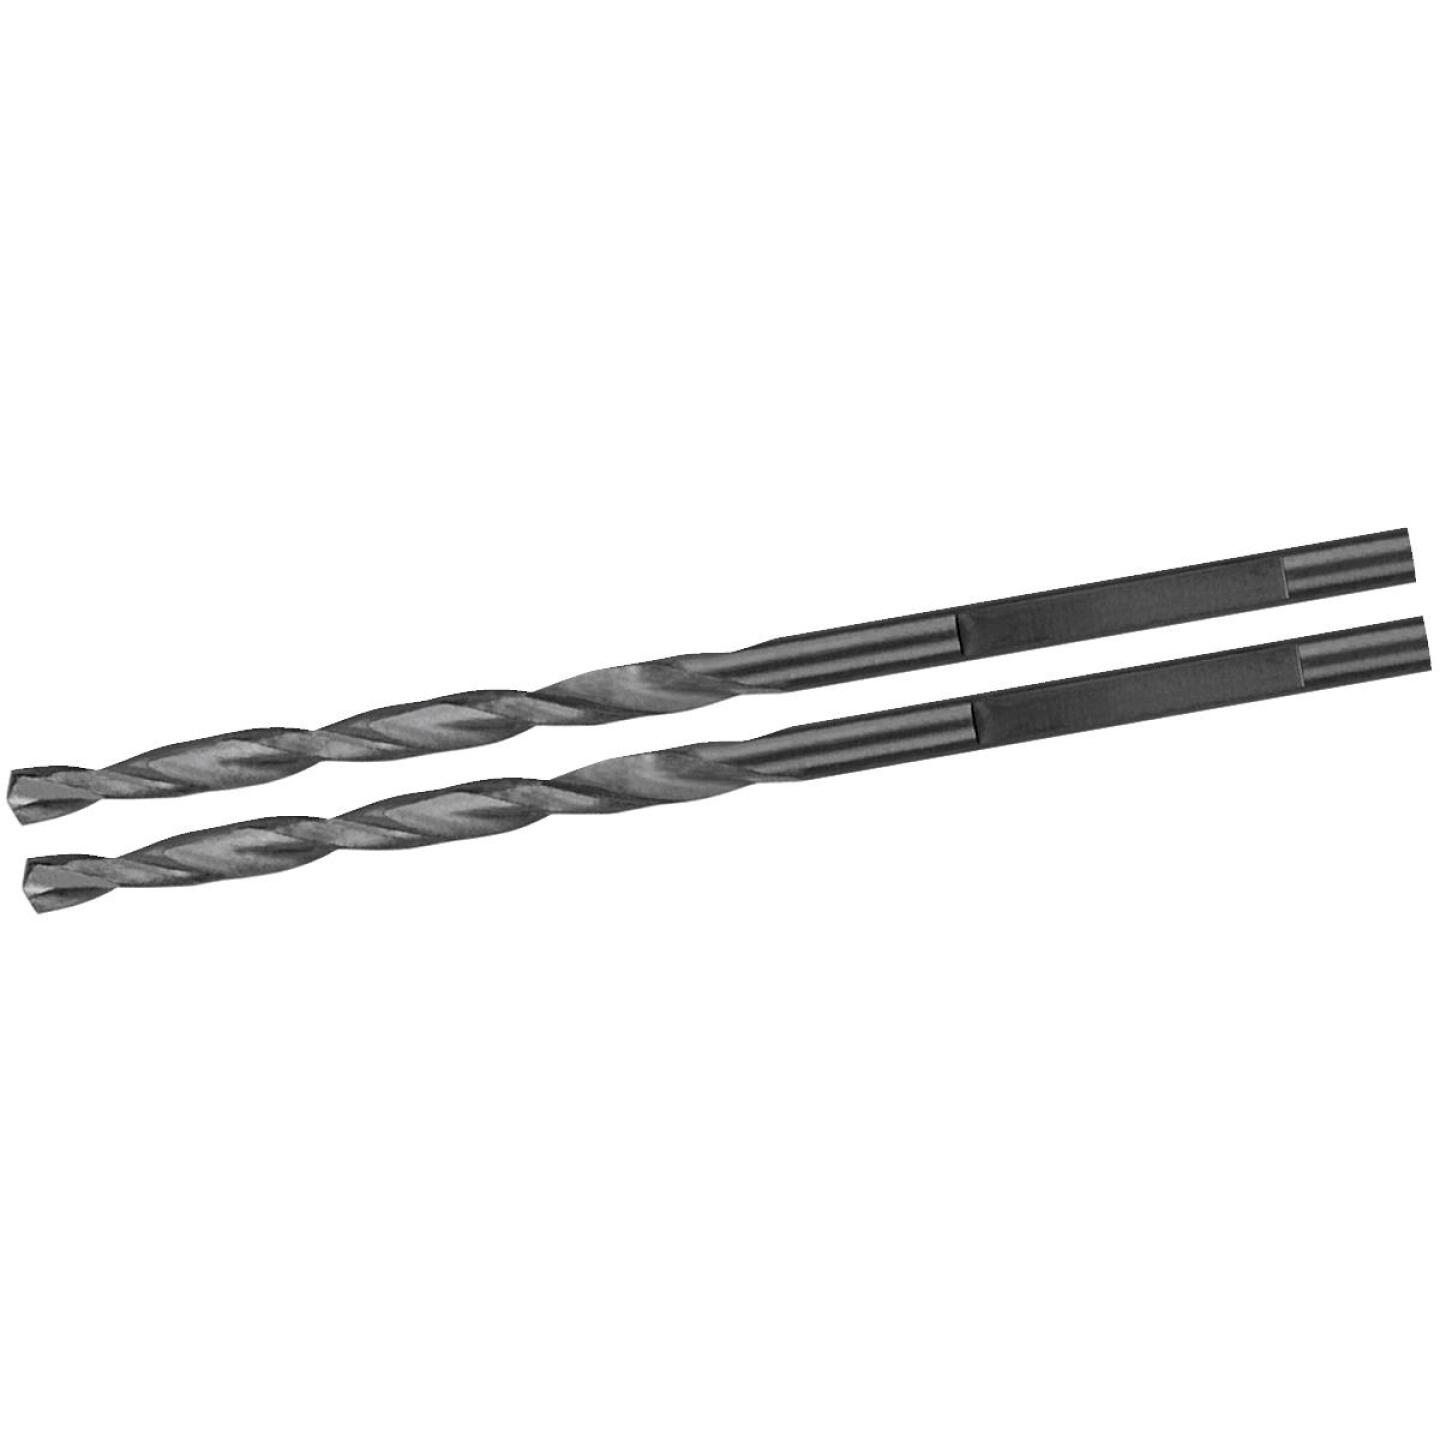 DeWalt #6 Black Oxide Drill & Drive Replacement Drill Bit (2-Pack) Image 1